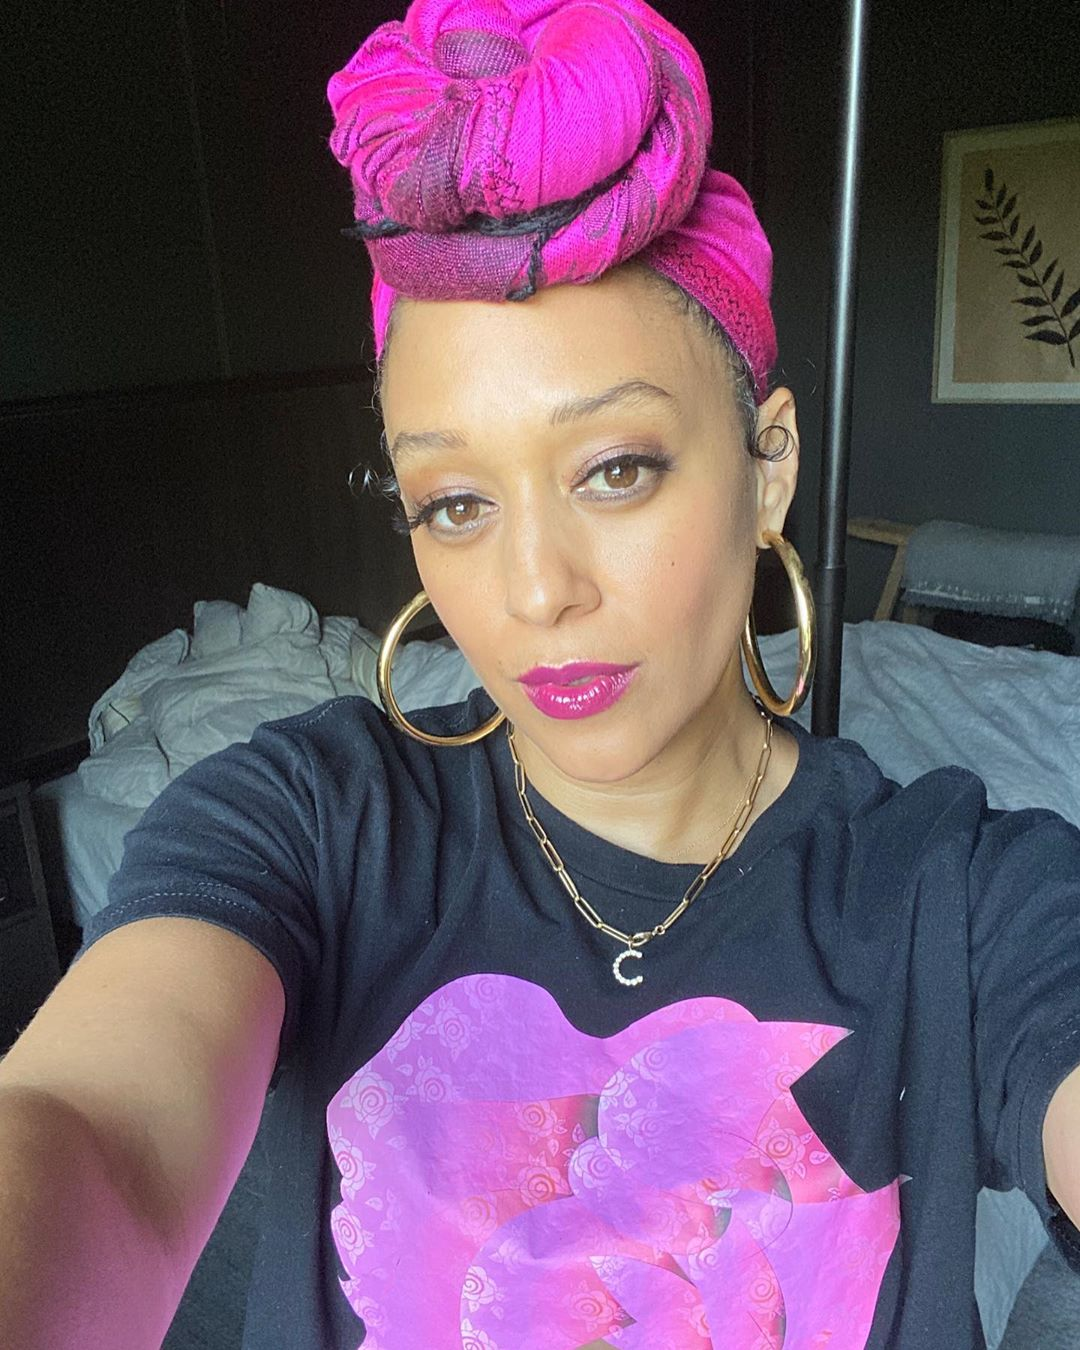 Tia Mowry in pink headwrap and black shirt